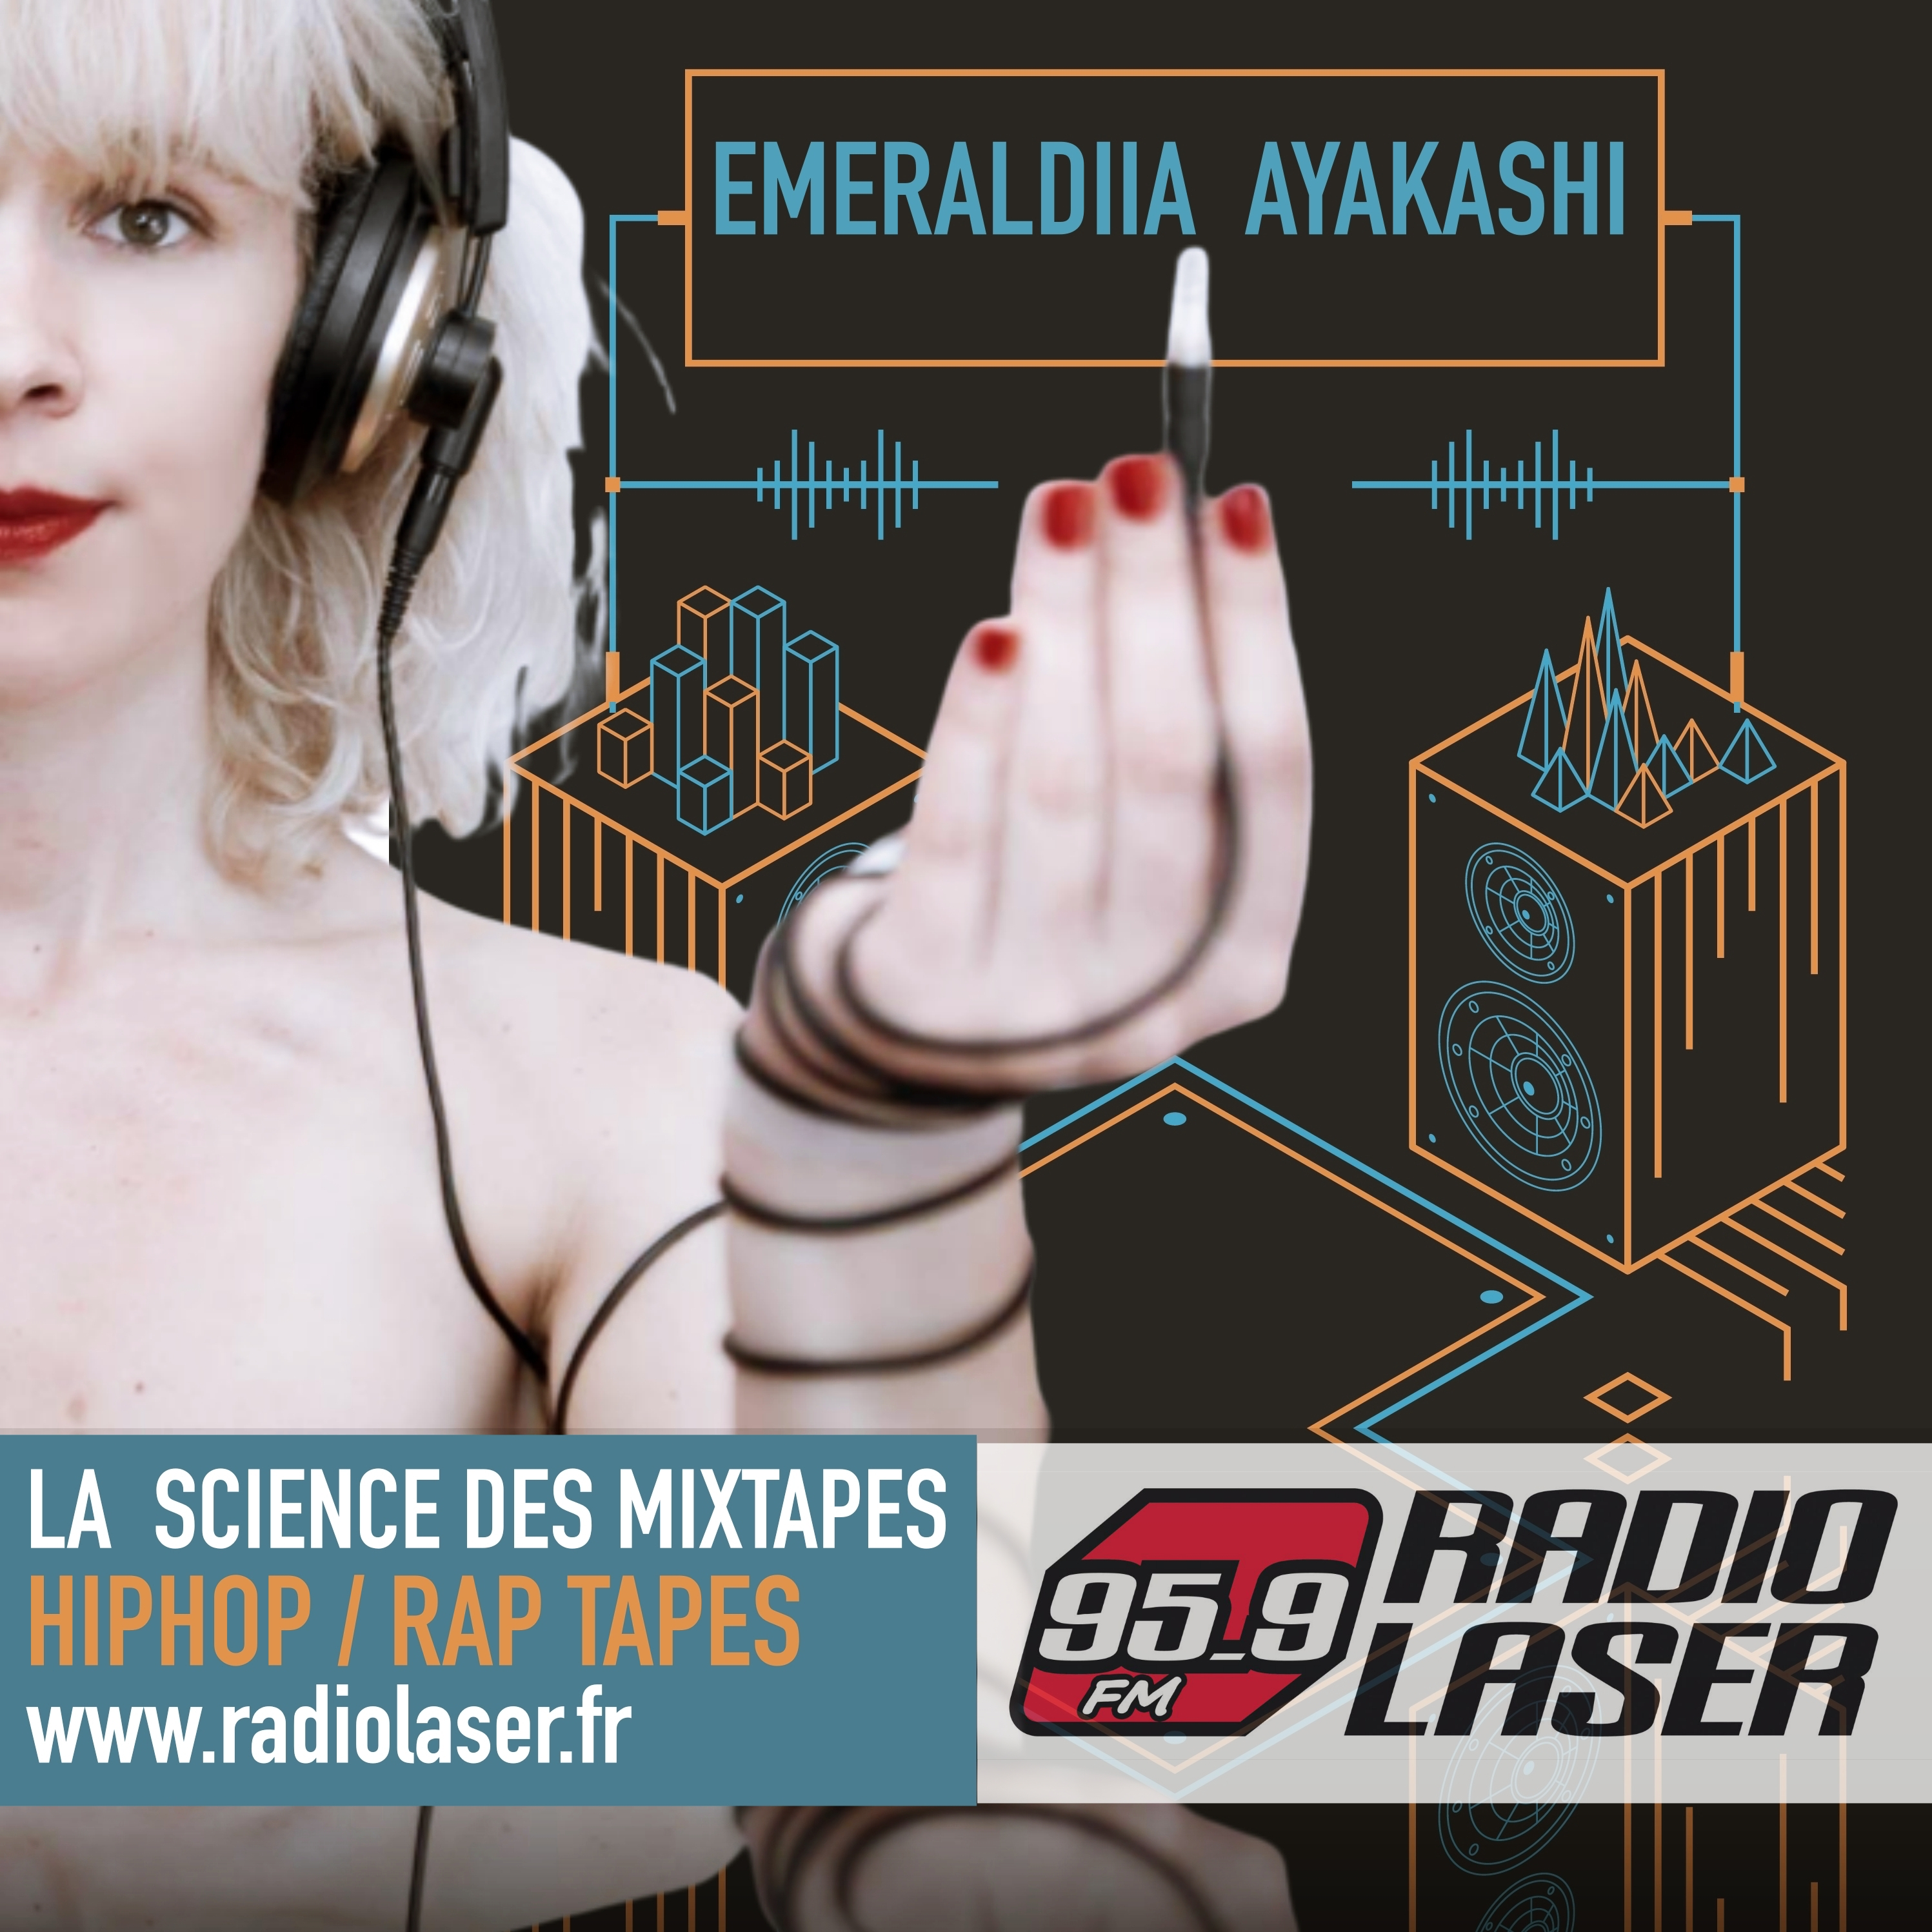 La Science des Mixtapes #23 mixée par Emeraldia Ayakashi